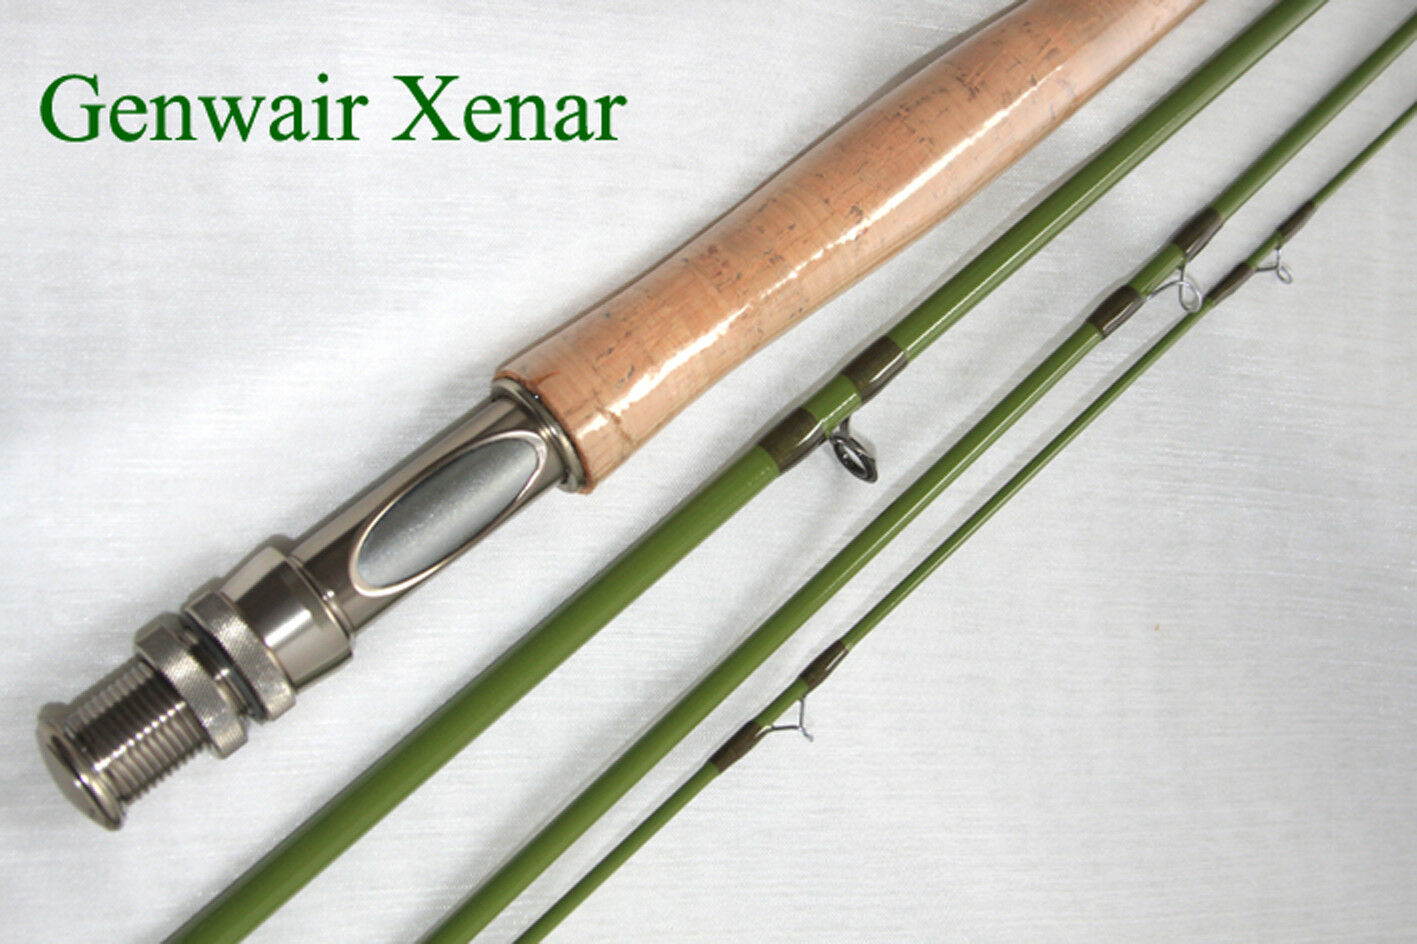 Fly Rod Ex Display Genwair Xenar 9 9 9 ft 5/6 wt fly rod Tube Bag & L/time Guarantee 14f5f7